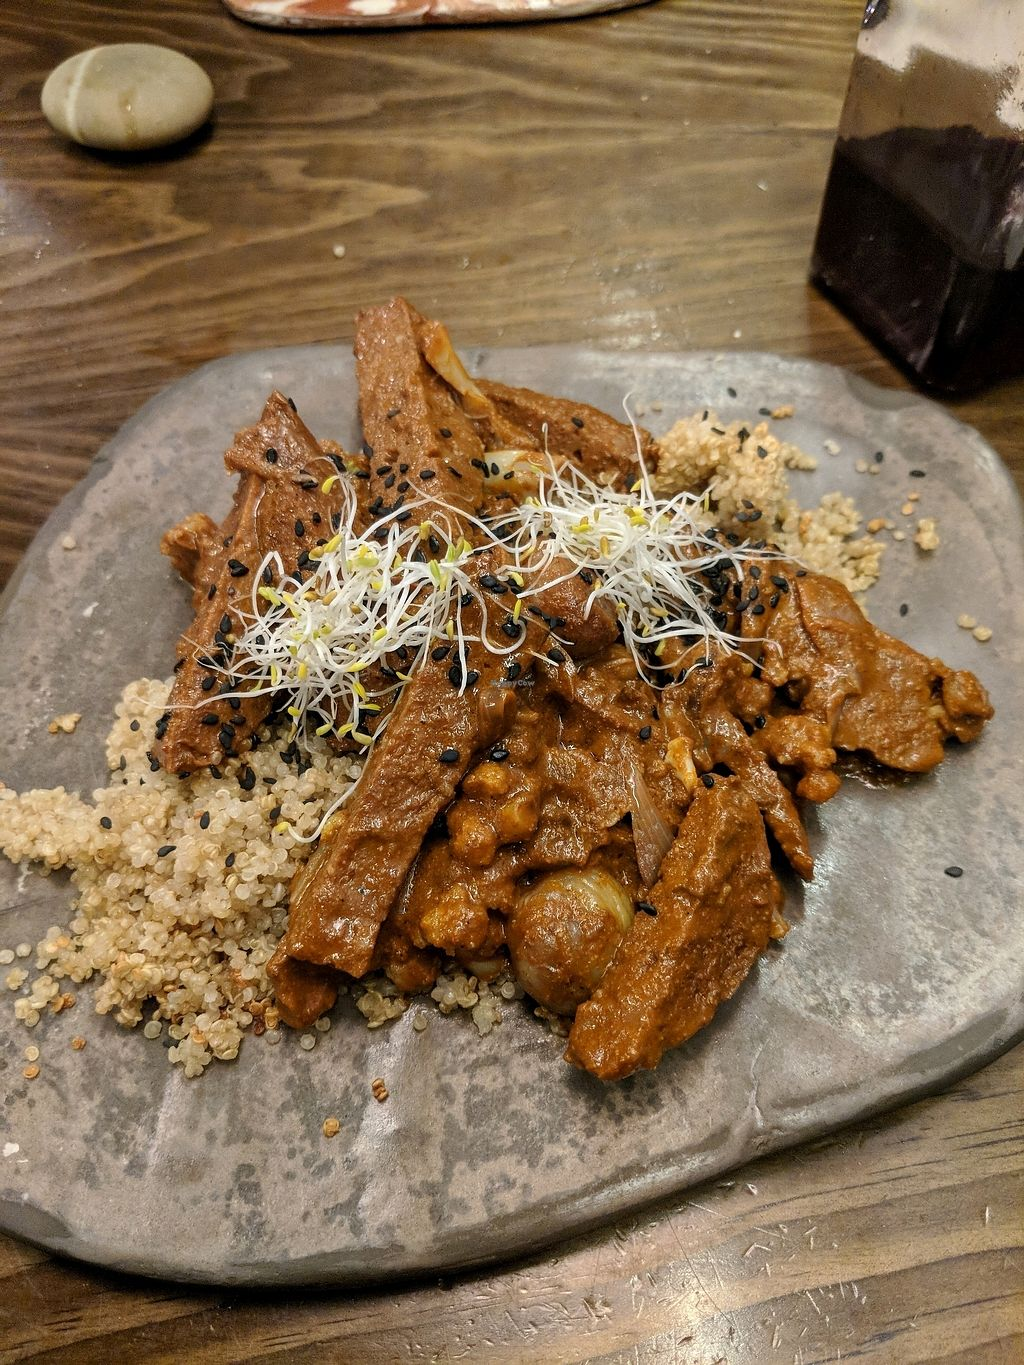 """Photo of La Encomienda  by <a href=""""/members/profile/Heners37"""">Heners37</a> <br/>seitan mole sauce with quinoa. lovely! <br/> March 31, 2018  - <a href='/contact/abuse/image/76139/378610'>Report</a>"""